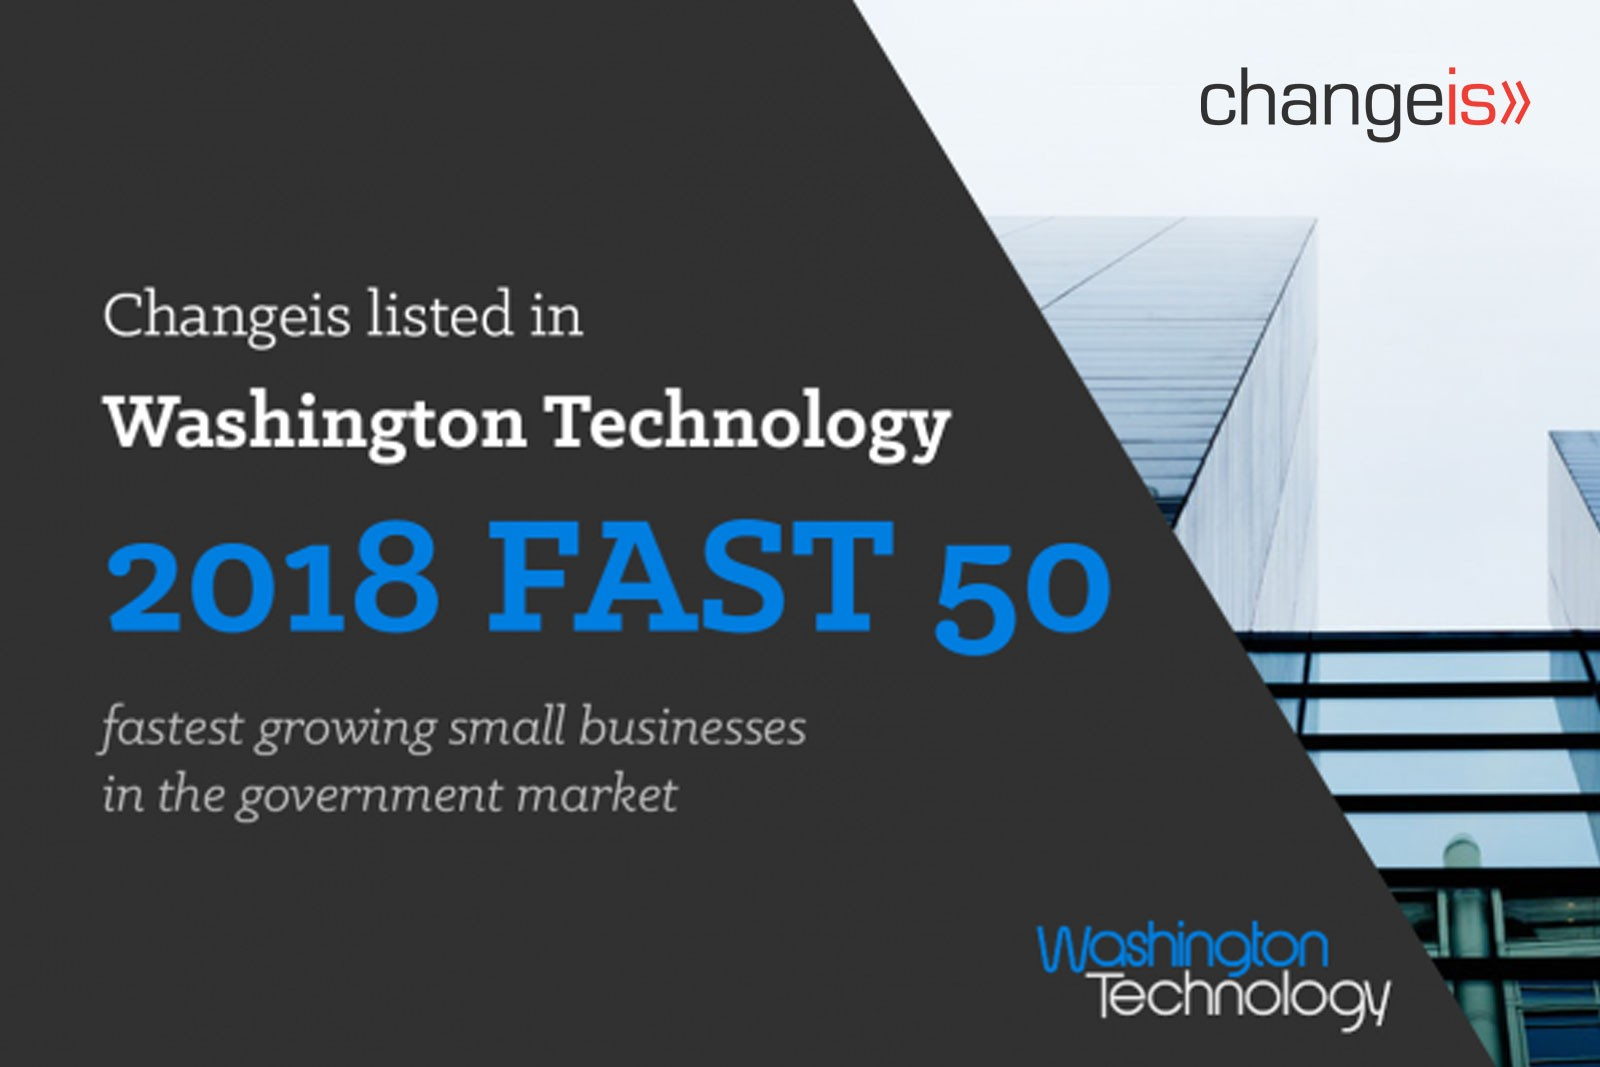 Changeis Listed in Washington Technology 2018 Fast 50